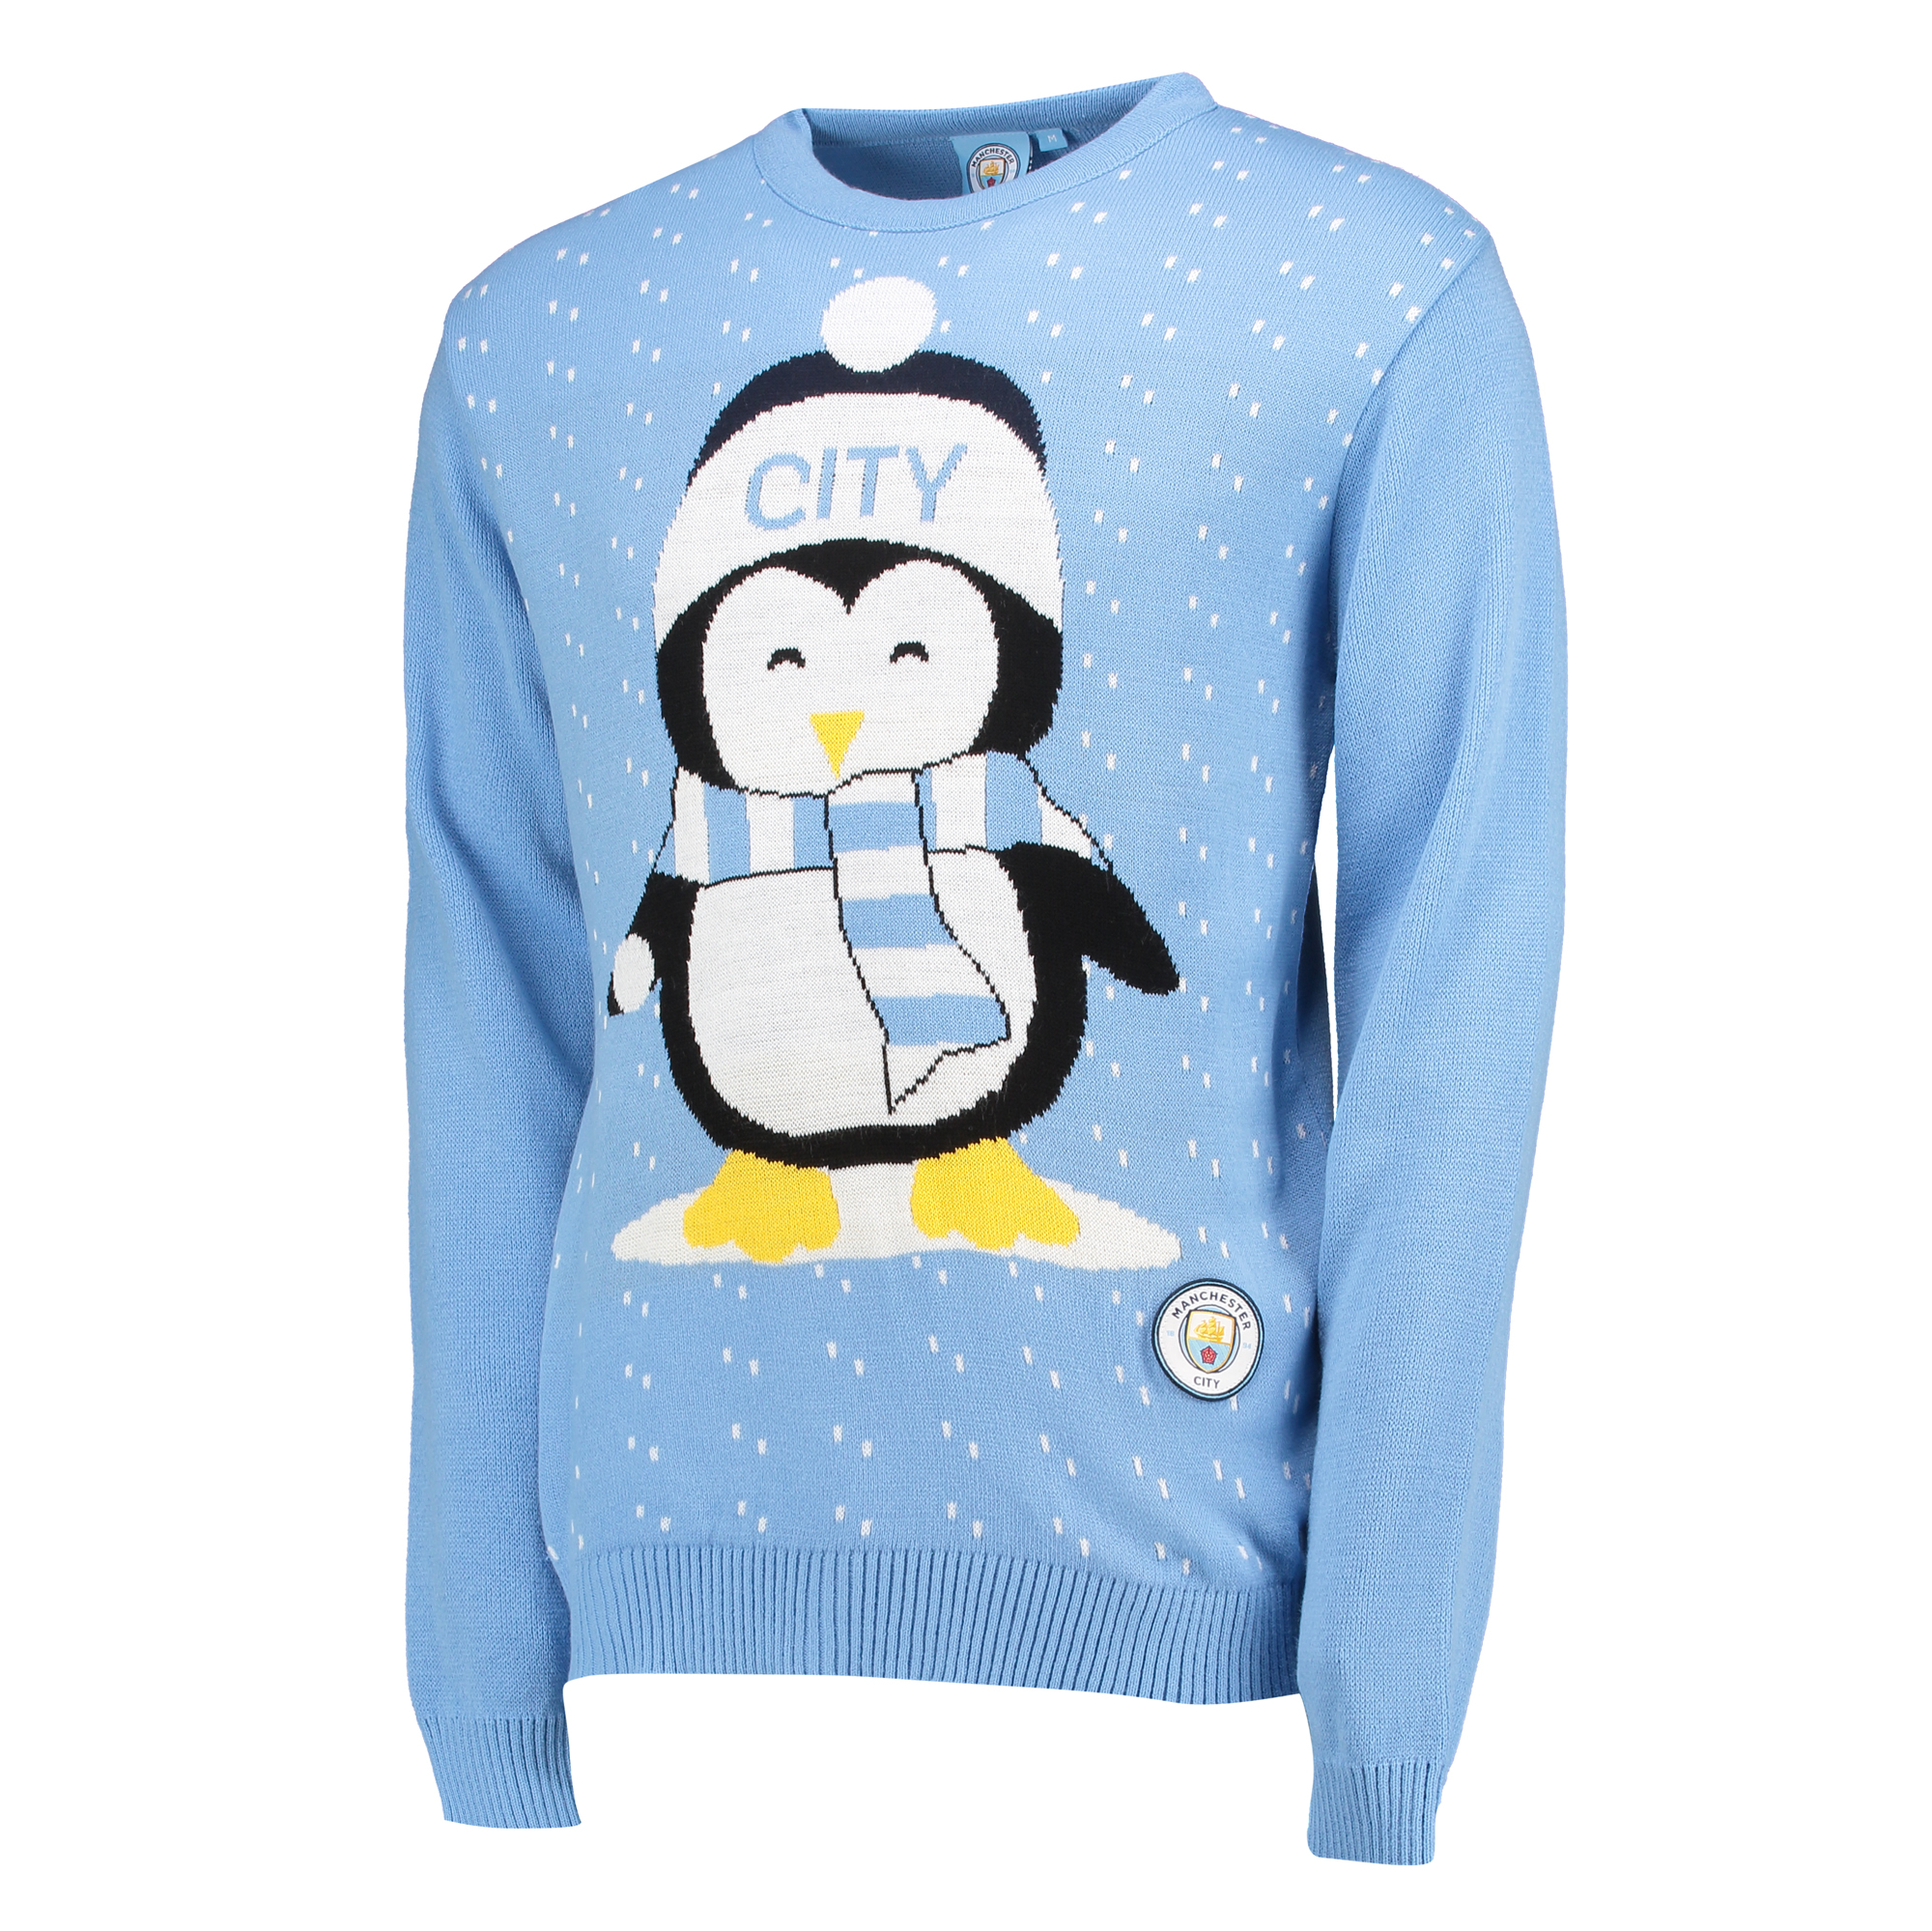 Manchester City Penguin Christmas Jumper - Sky Blue - Junior